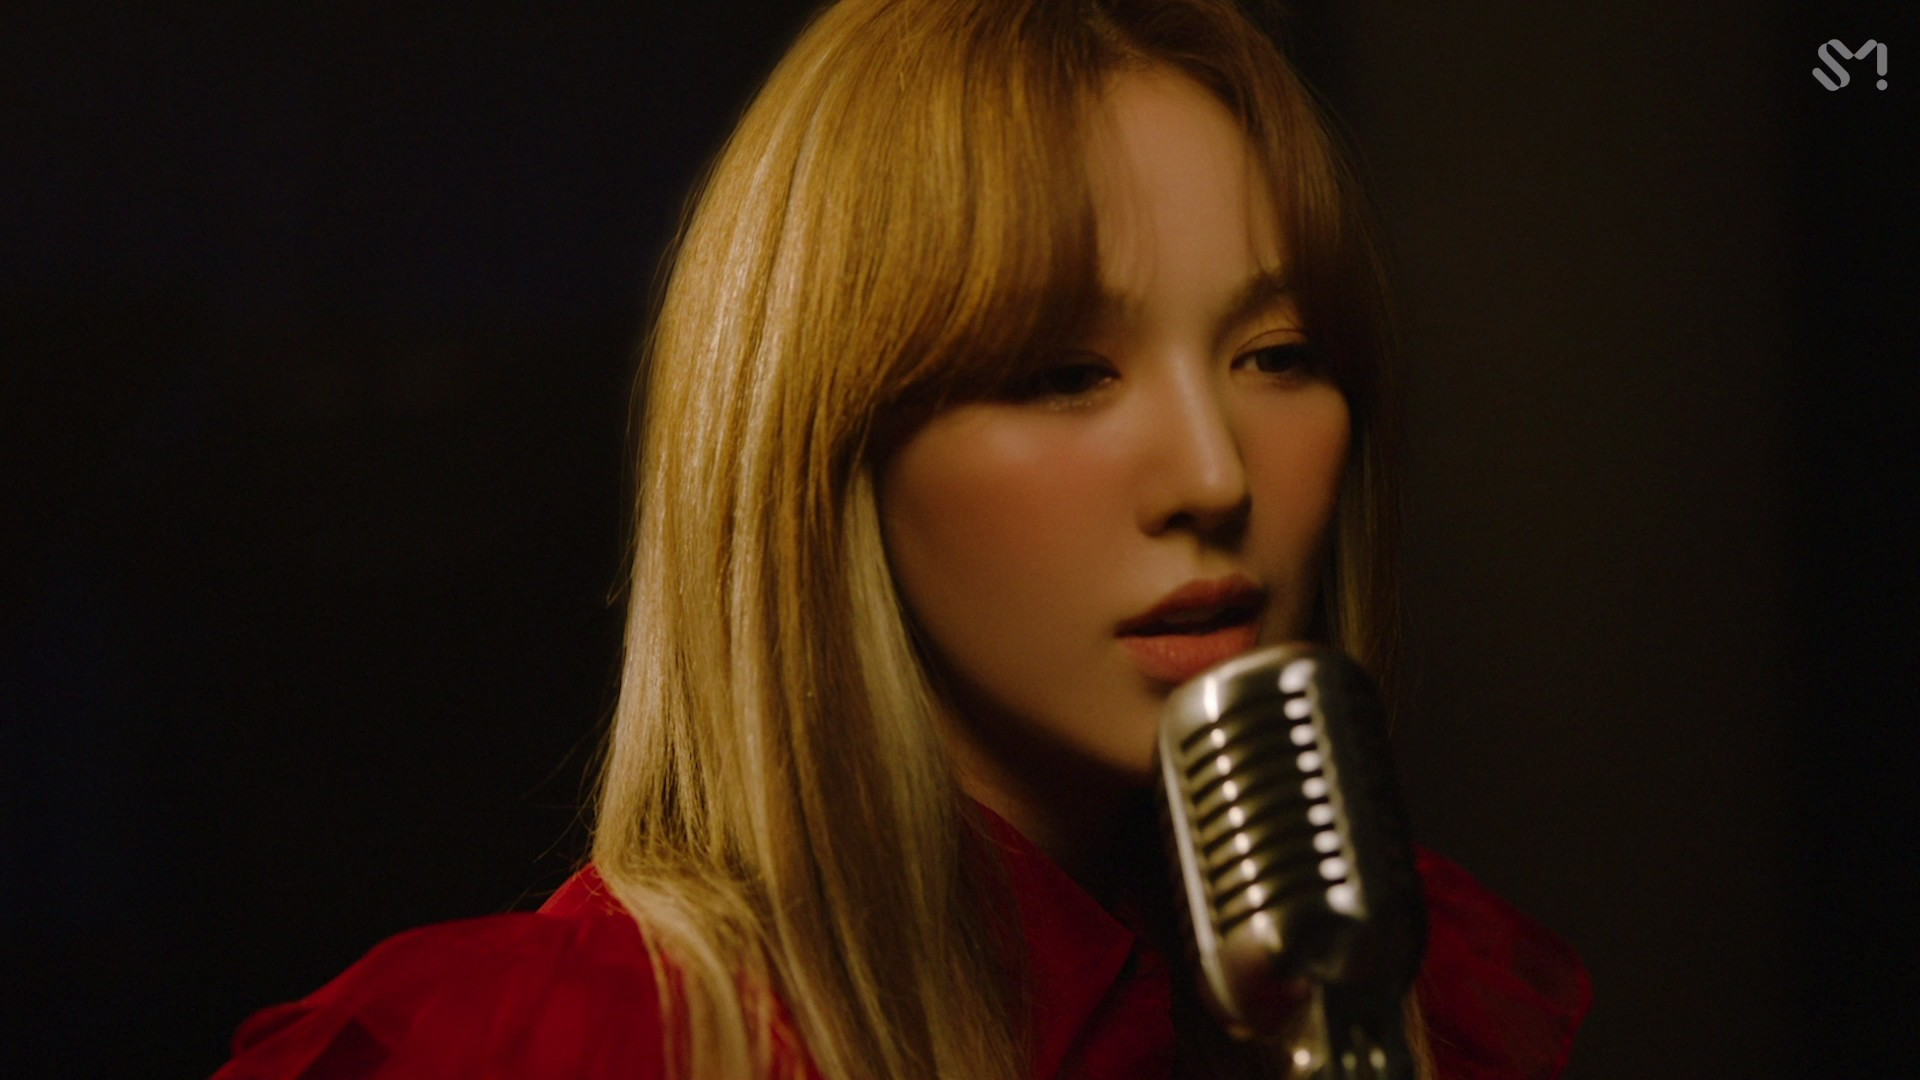 WENDY 웬디 'When This Rain Stops' Live Video